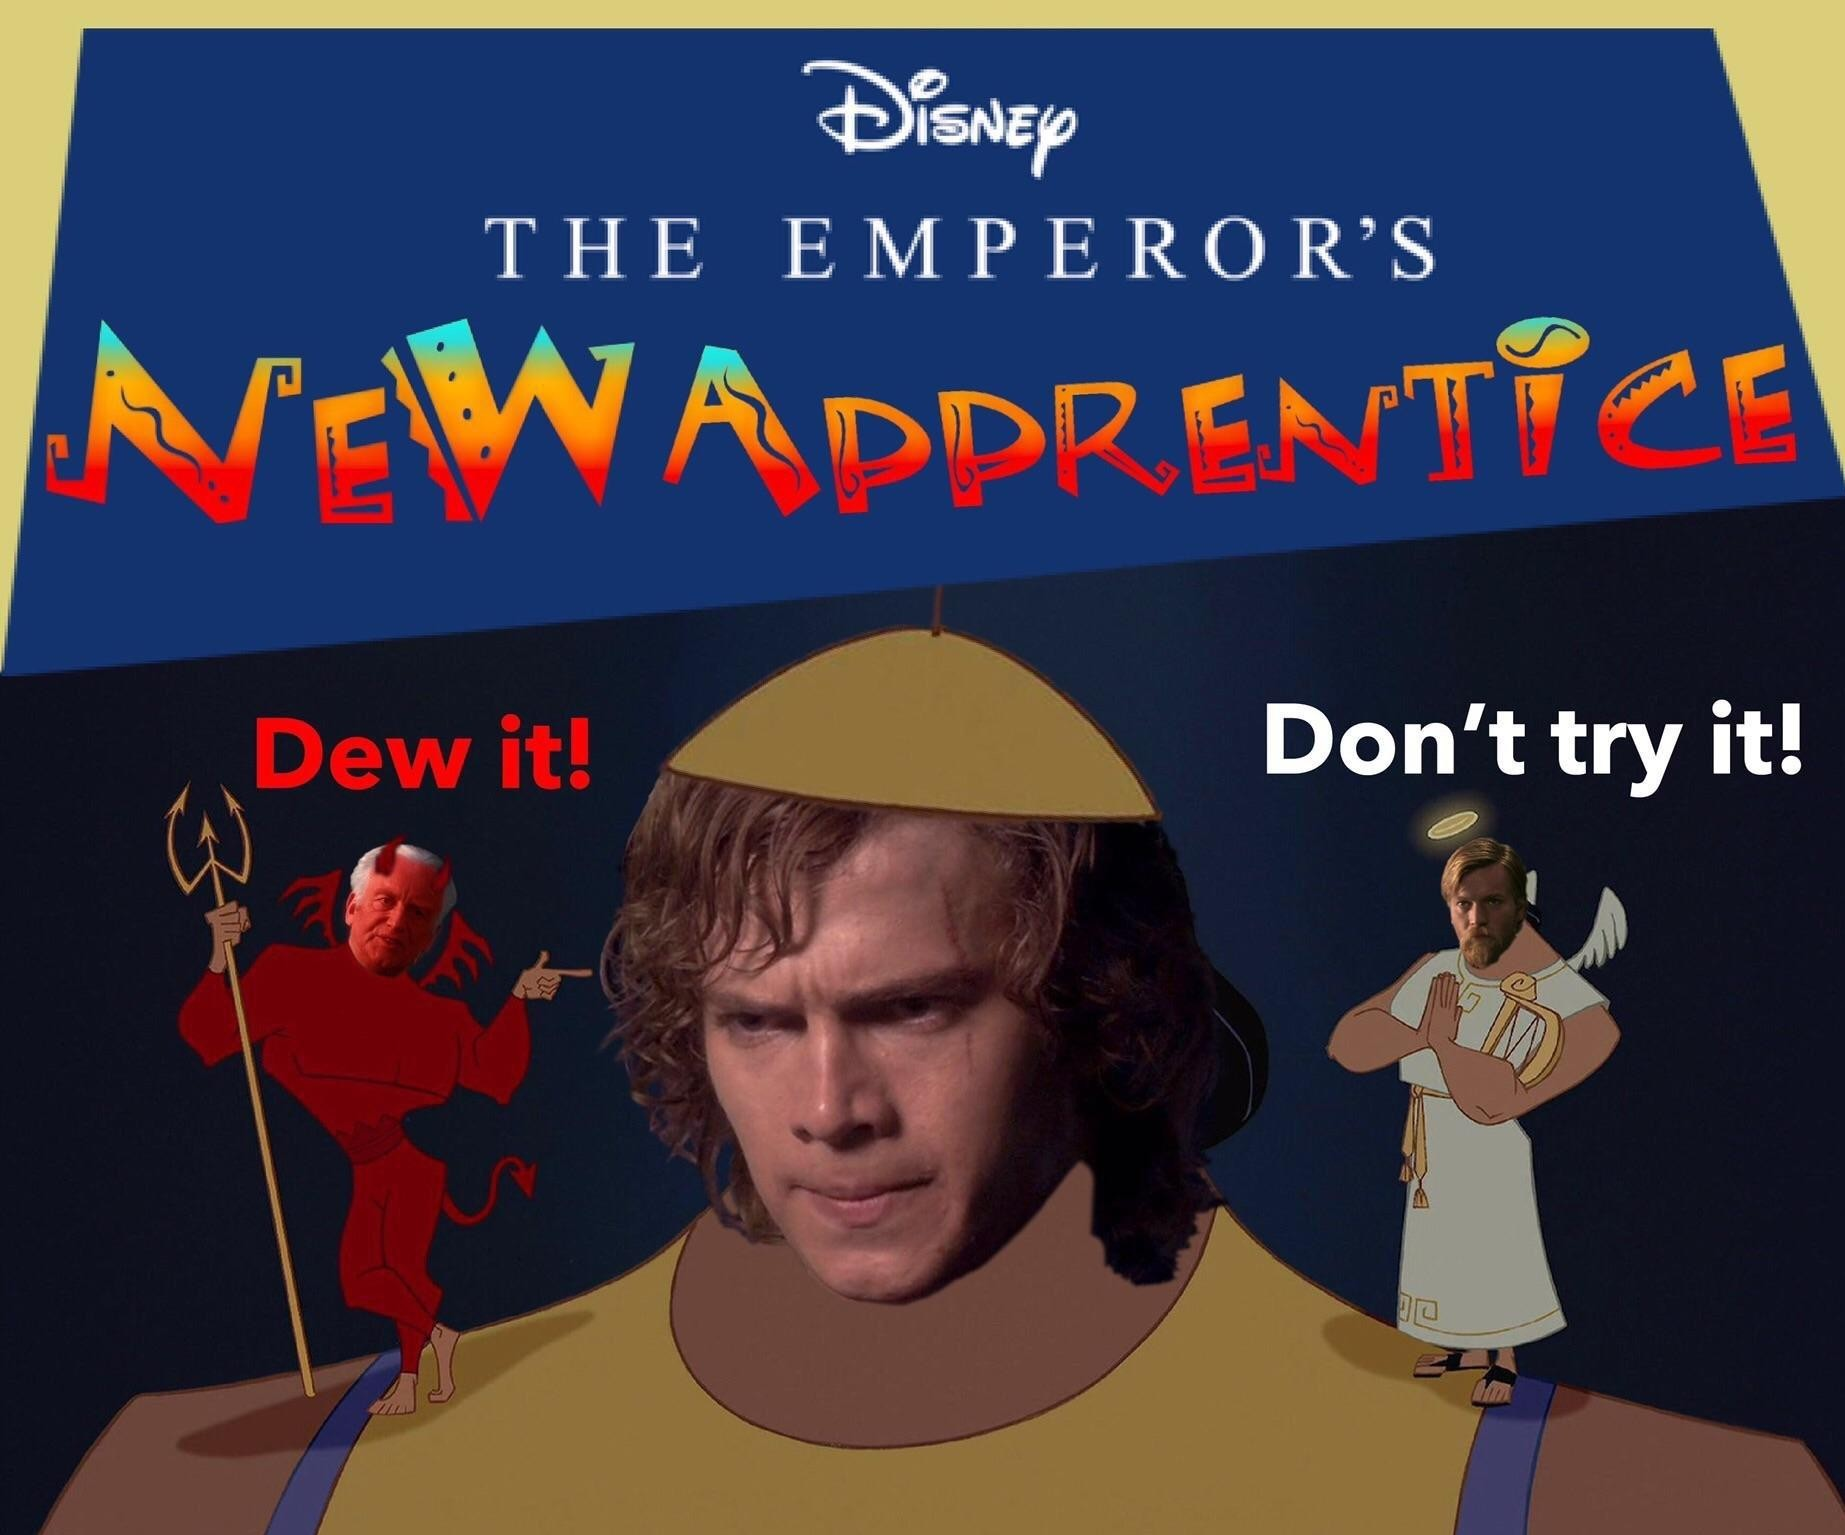 What shall we do master Skywalker? - meme